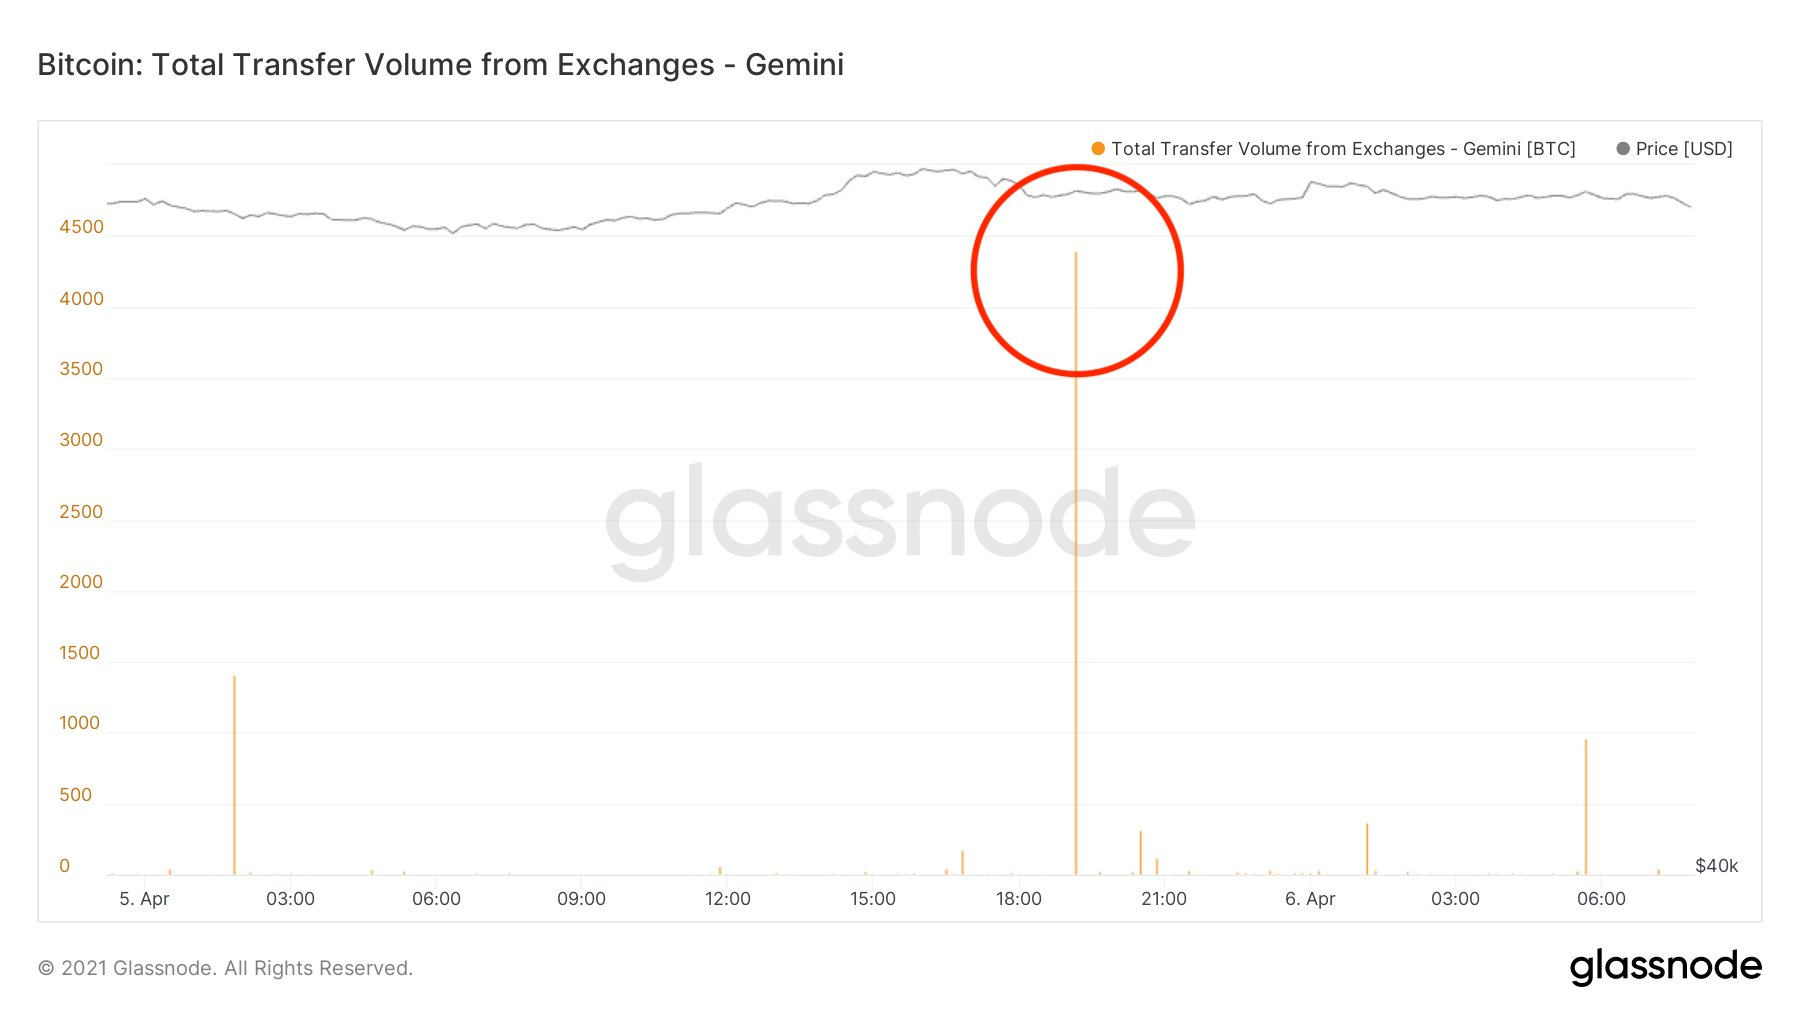 Buy more Bitcoin, expert informs institutions as $257M in BTC leaves Gemini